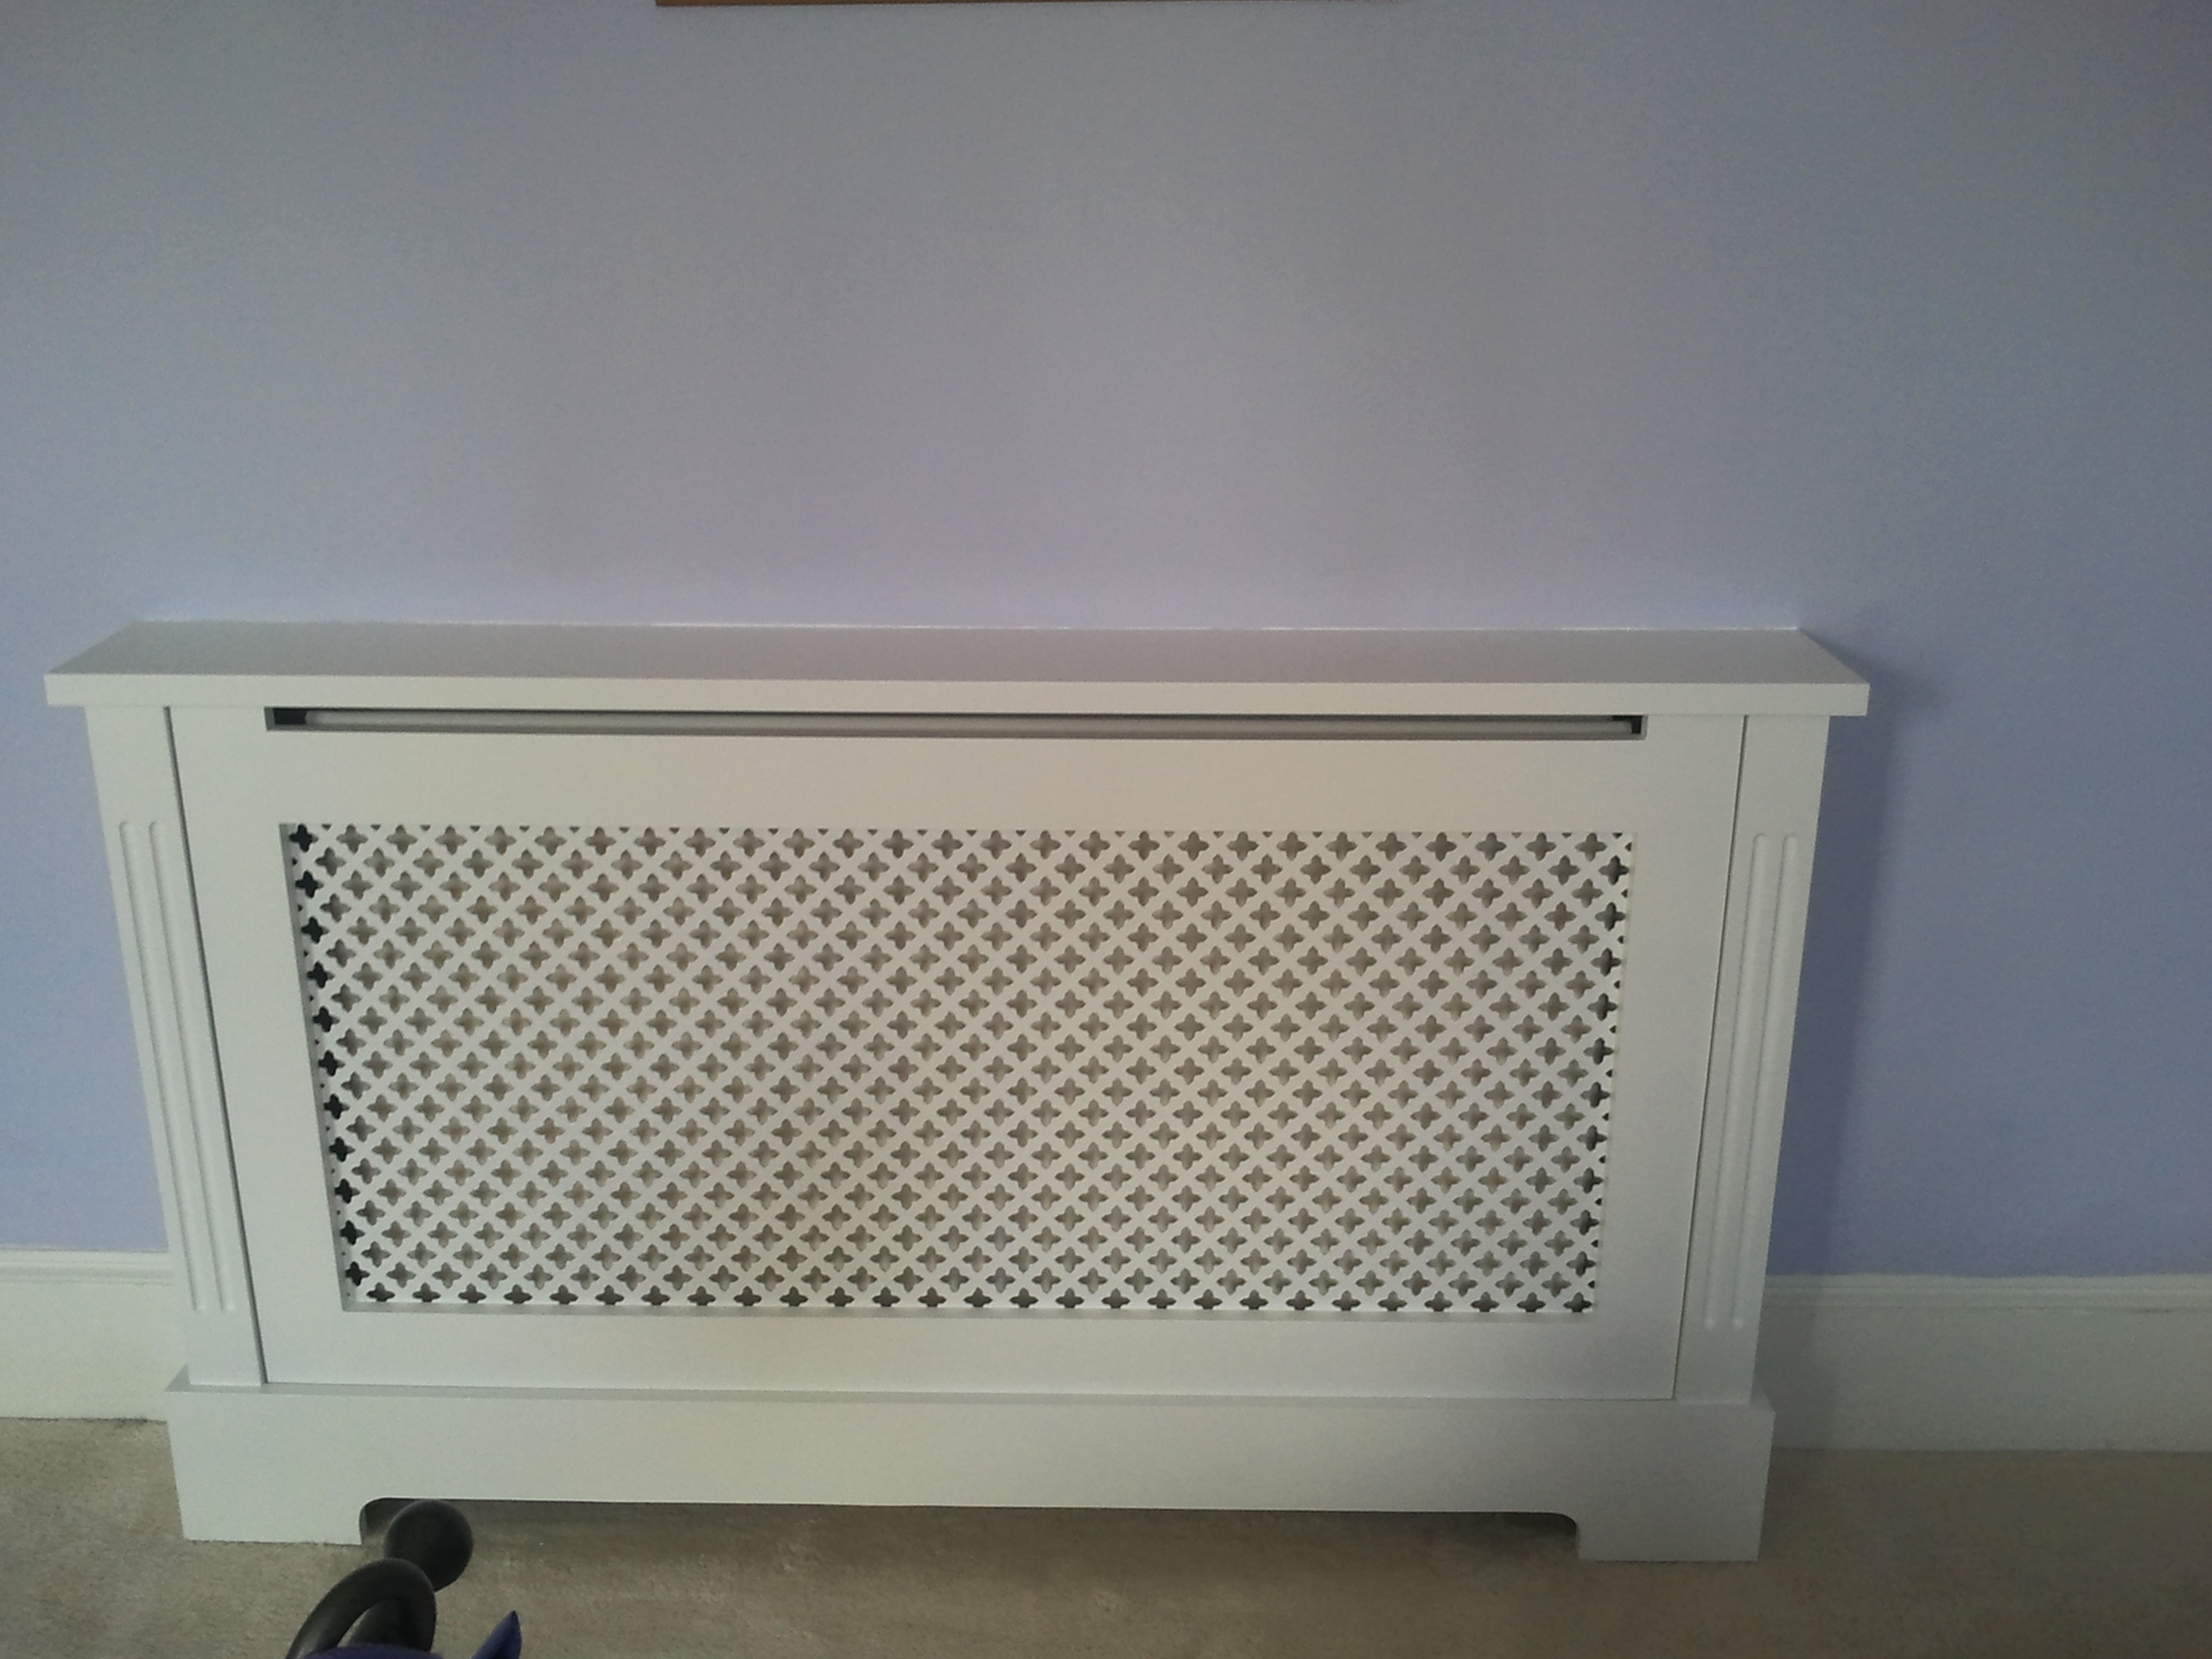 Radiator Covers Bespoke Fitted Furniture For London Lahart With Regard To Radiator Cupboards (View 15 of 15)